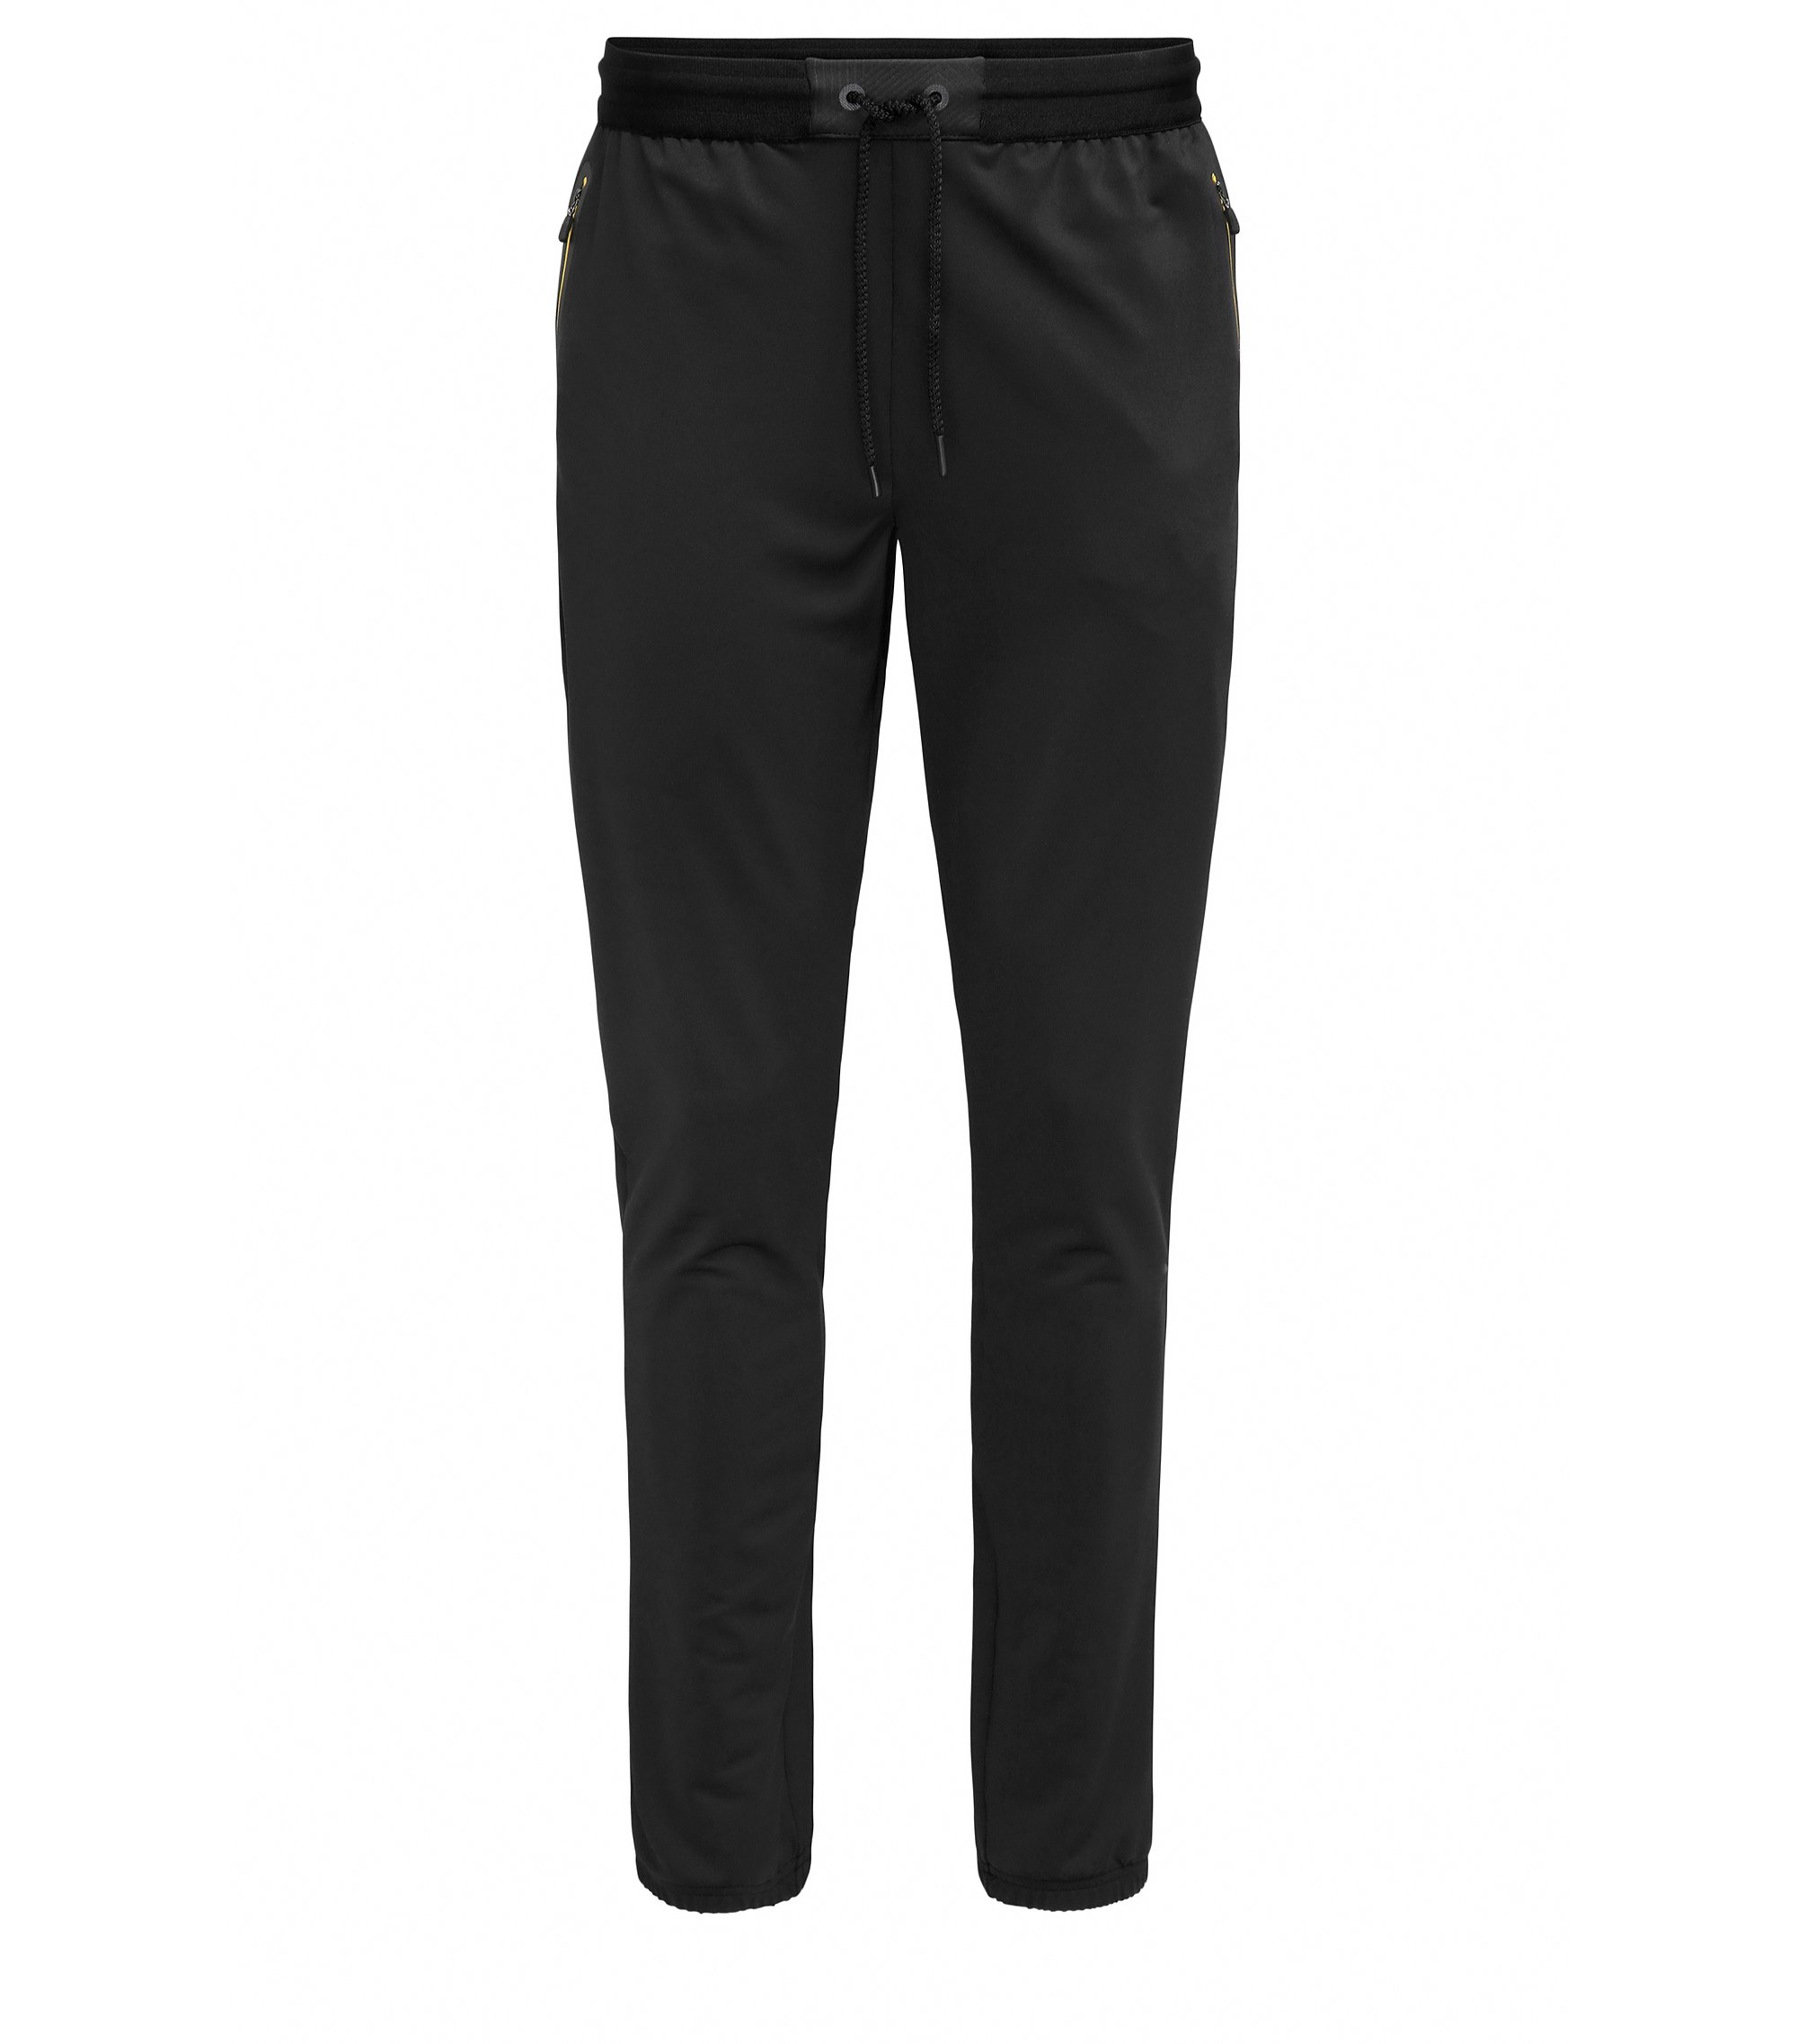 Nylon Pants | Horatech, Black